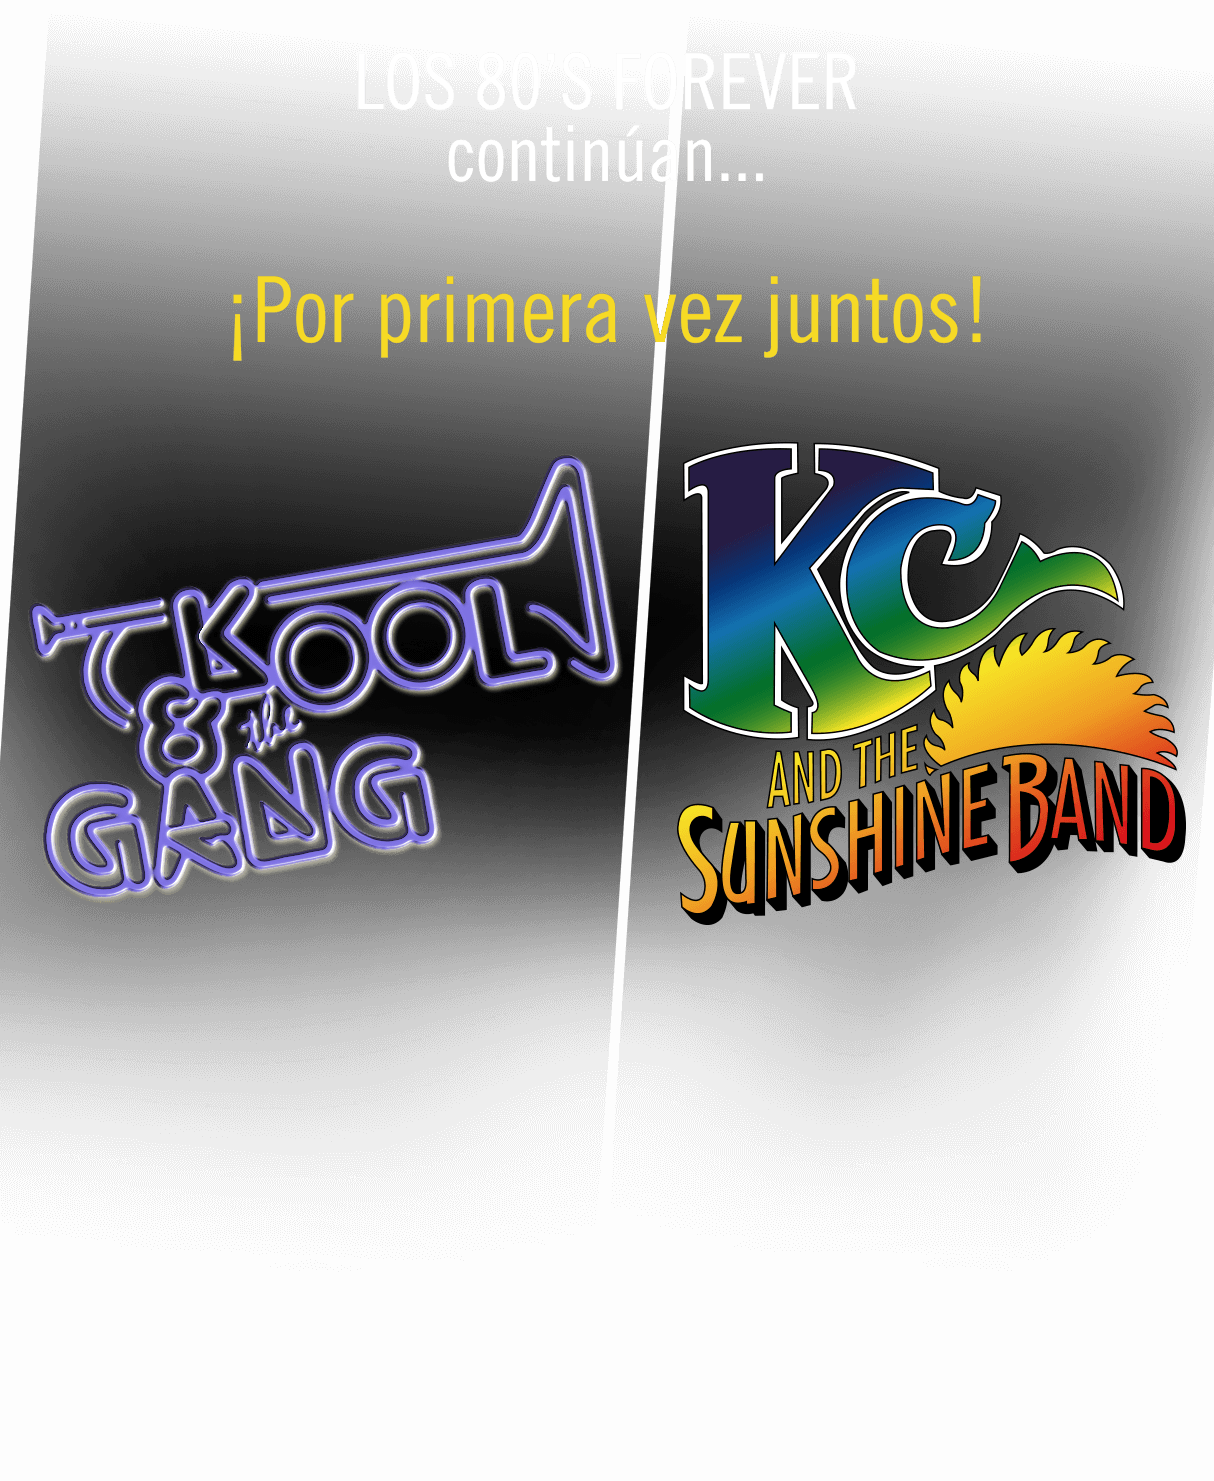 Kool & the Gang y KC & The Sunshine Band - Movistar Arena - 24 de abril